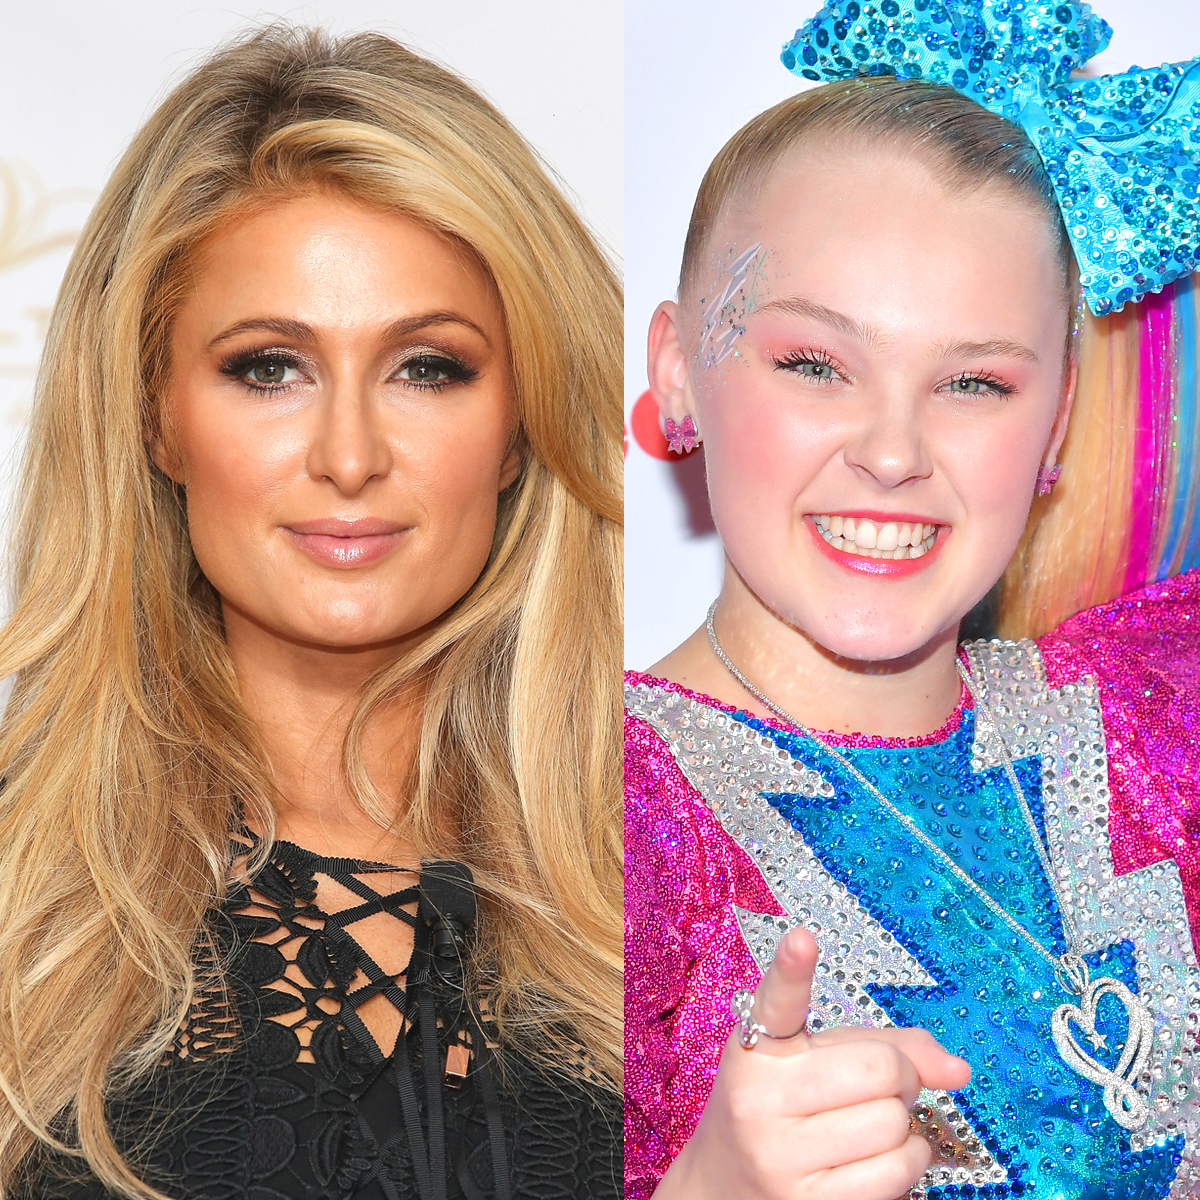 Paris Hilton and Jojo Siwa Reveal Their Epic Makeovers After Transforming Into Each Other